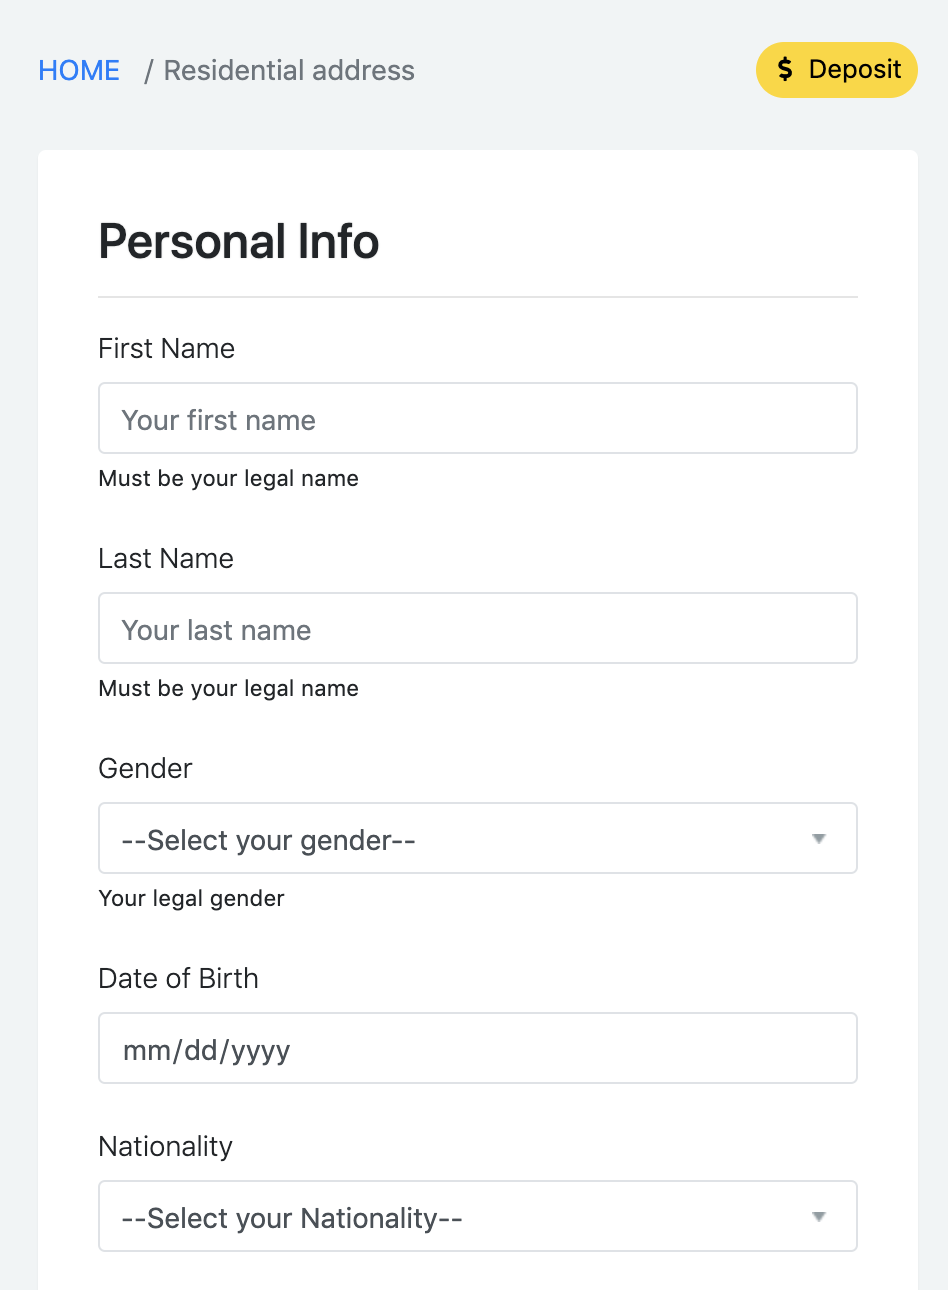 mobile version of KYC data input form at Option Pool